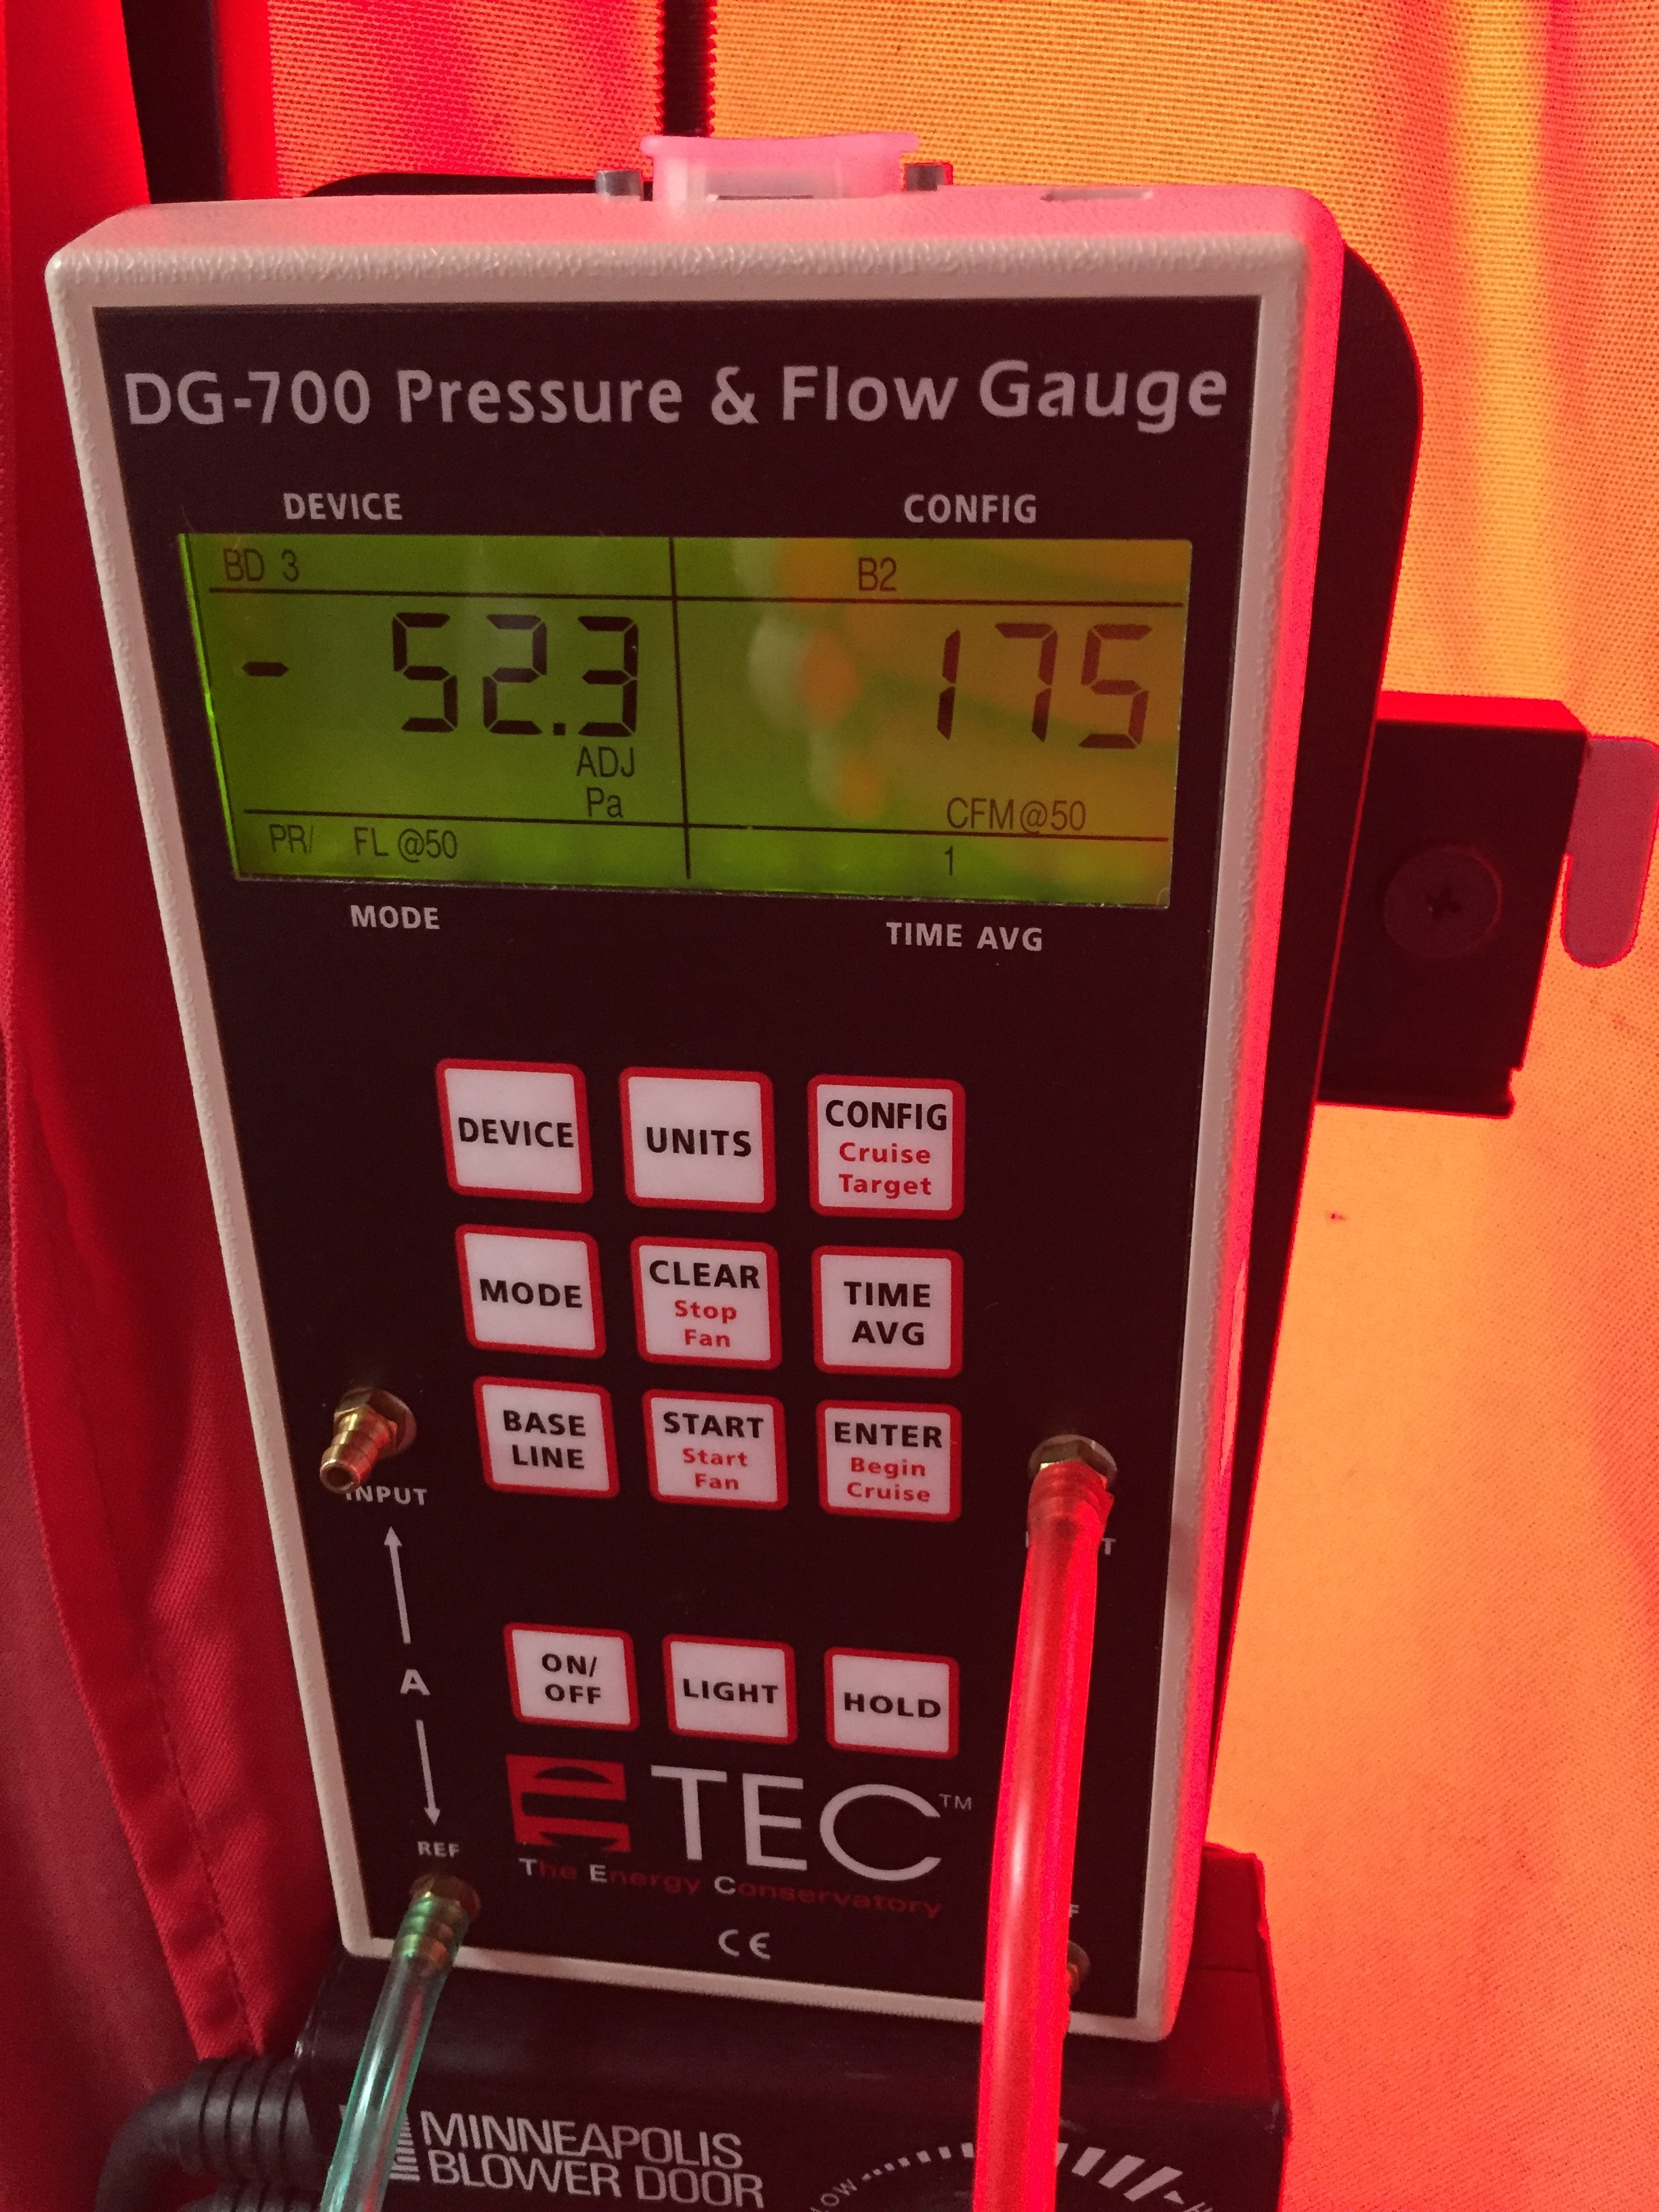 Our blower door results are in, and we're very pleased with them. To calculate air changes per hour (ACH), we multiplied the CFM number on the right by 60 and divided by the number of cubic feet of the house.